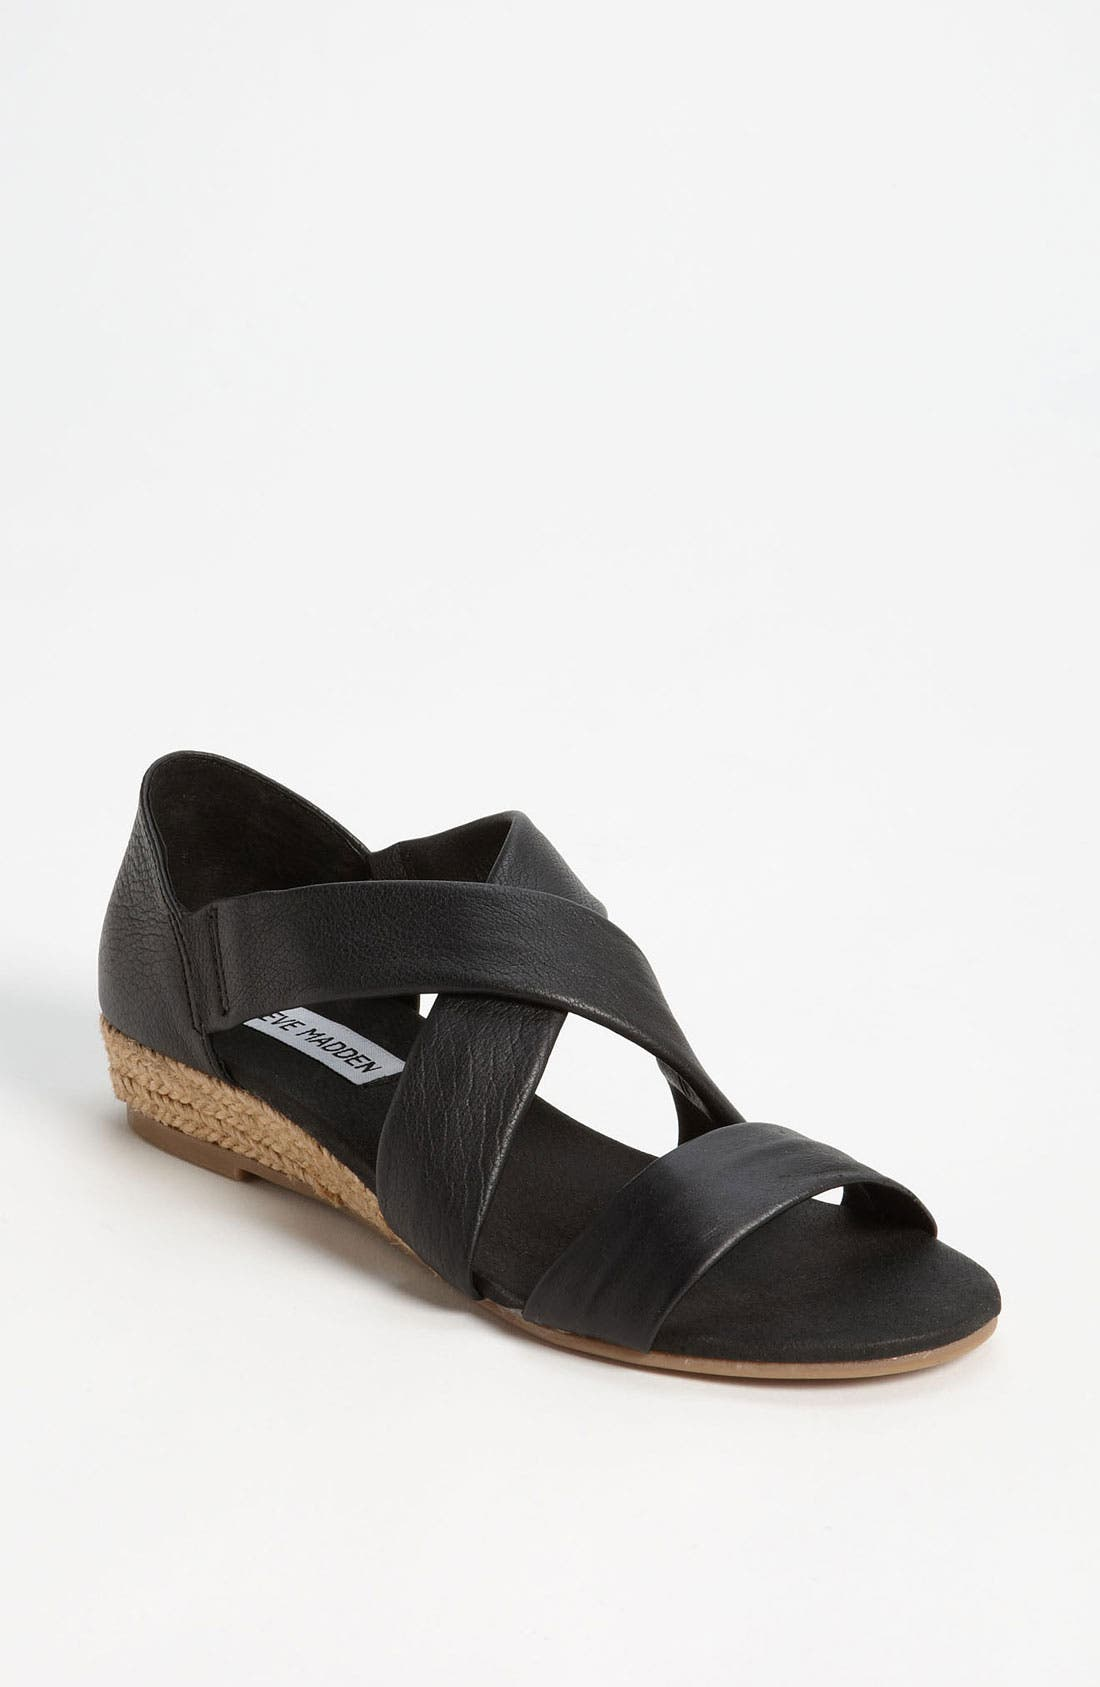 Alternate Image 1 Selected - Steve Madden 'Talumm' Sandal